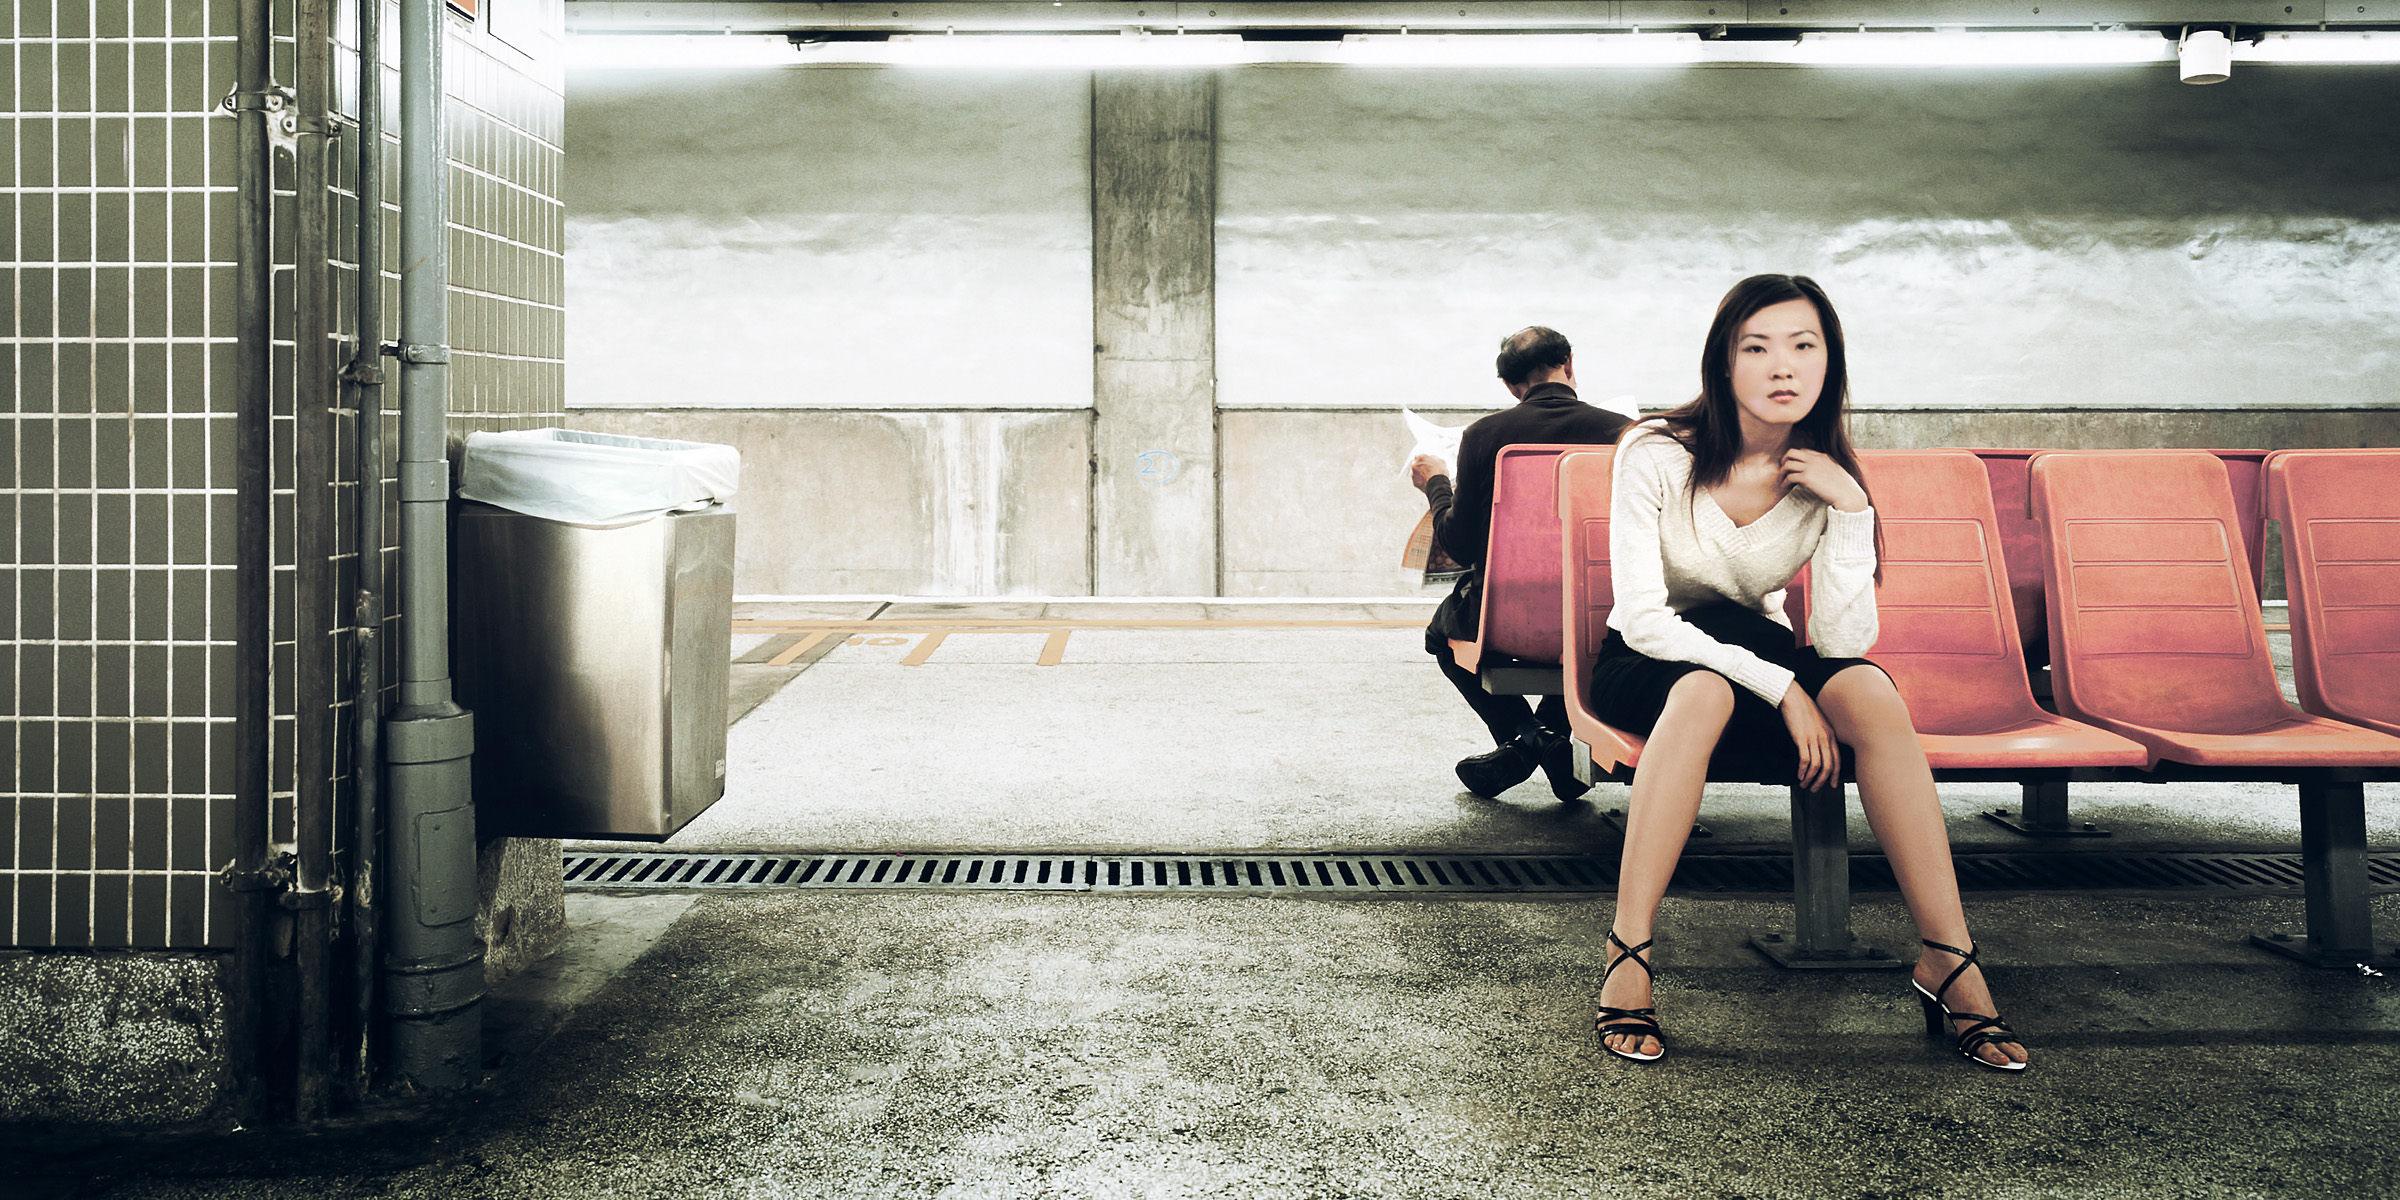 Portrait of young woman on Hong Kong Subway